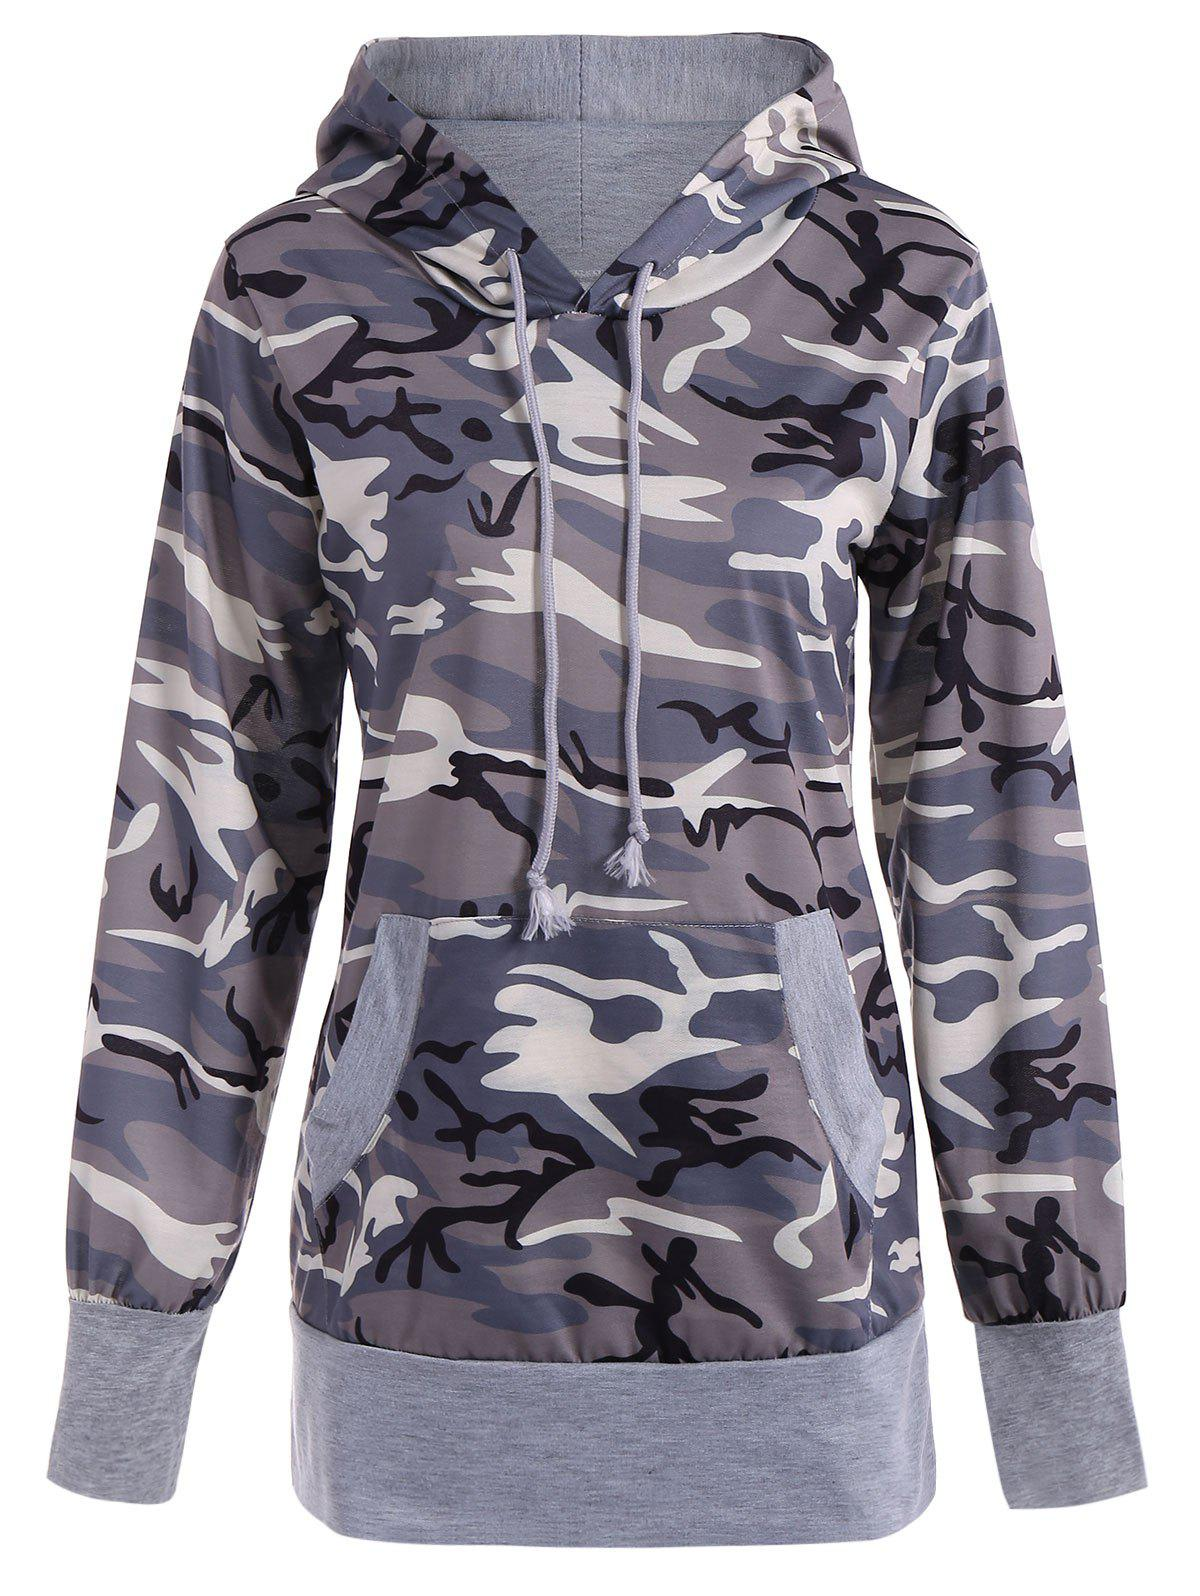 Long Sleeve Drawstring Camo Pullover Hoodie - CAMOUFLAGE 2XL